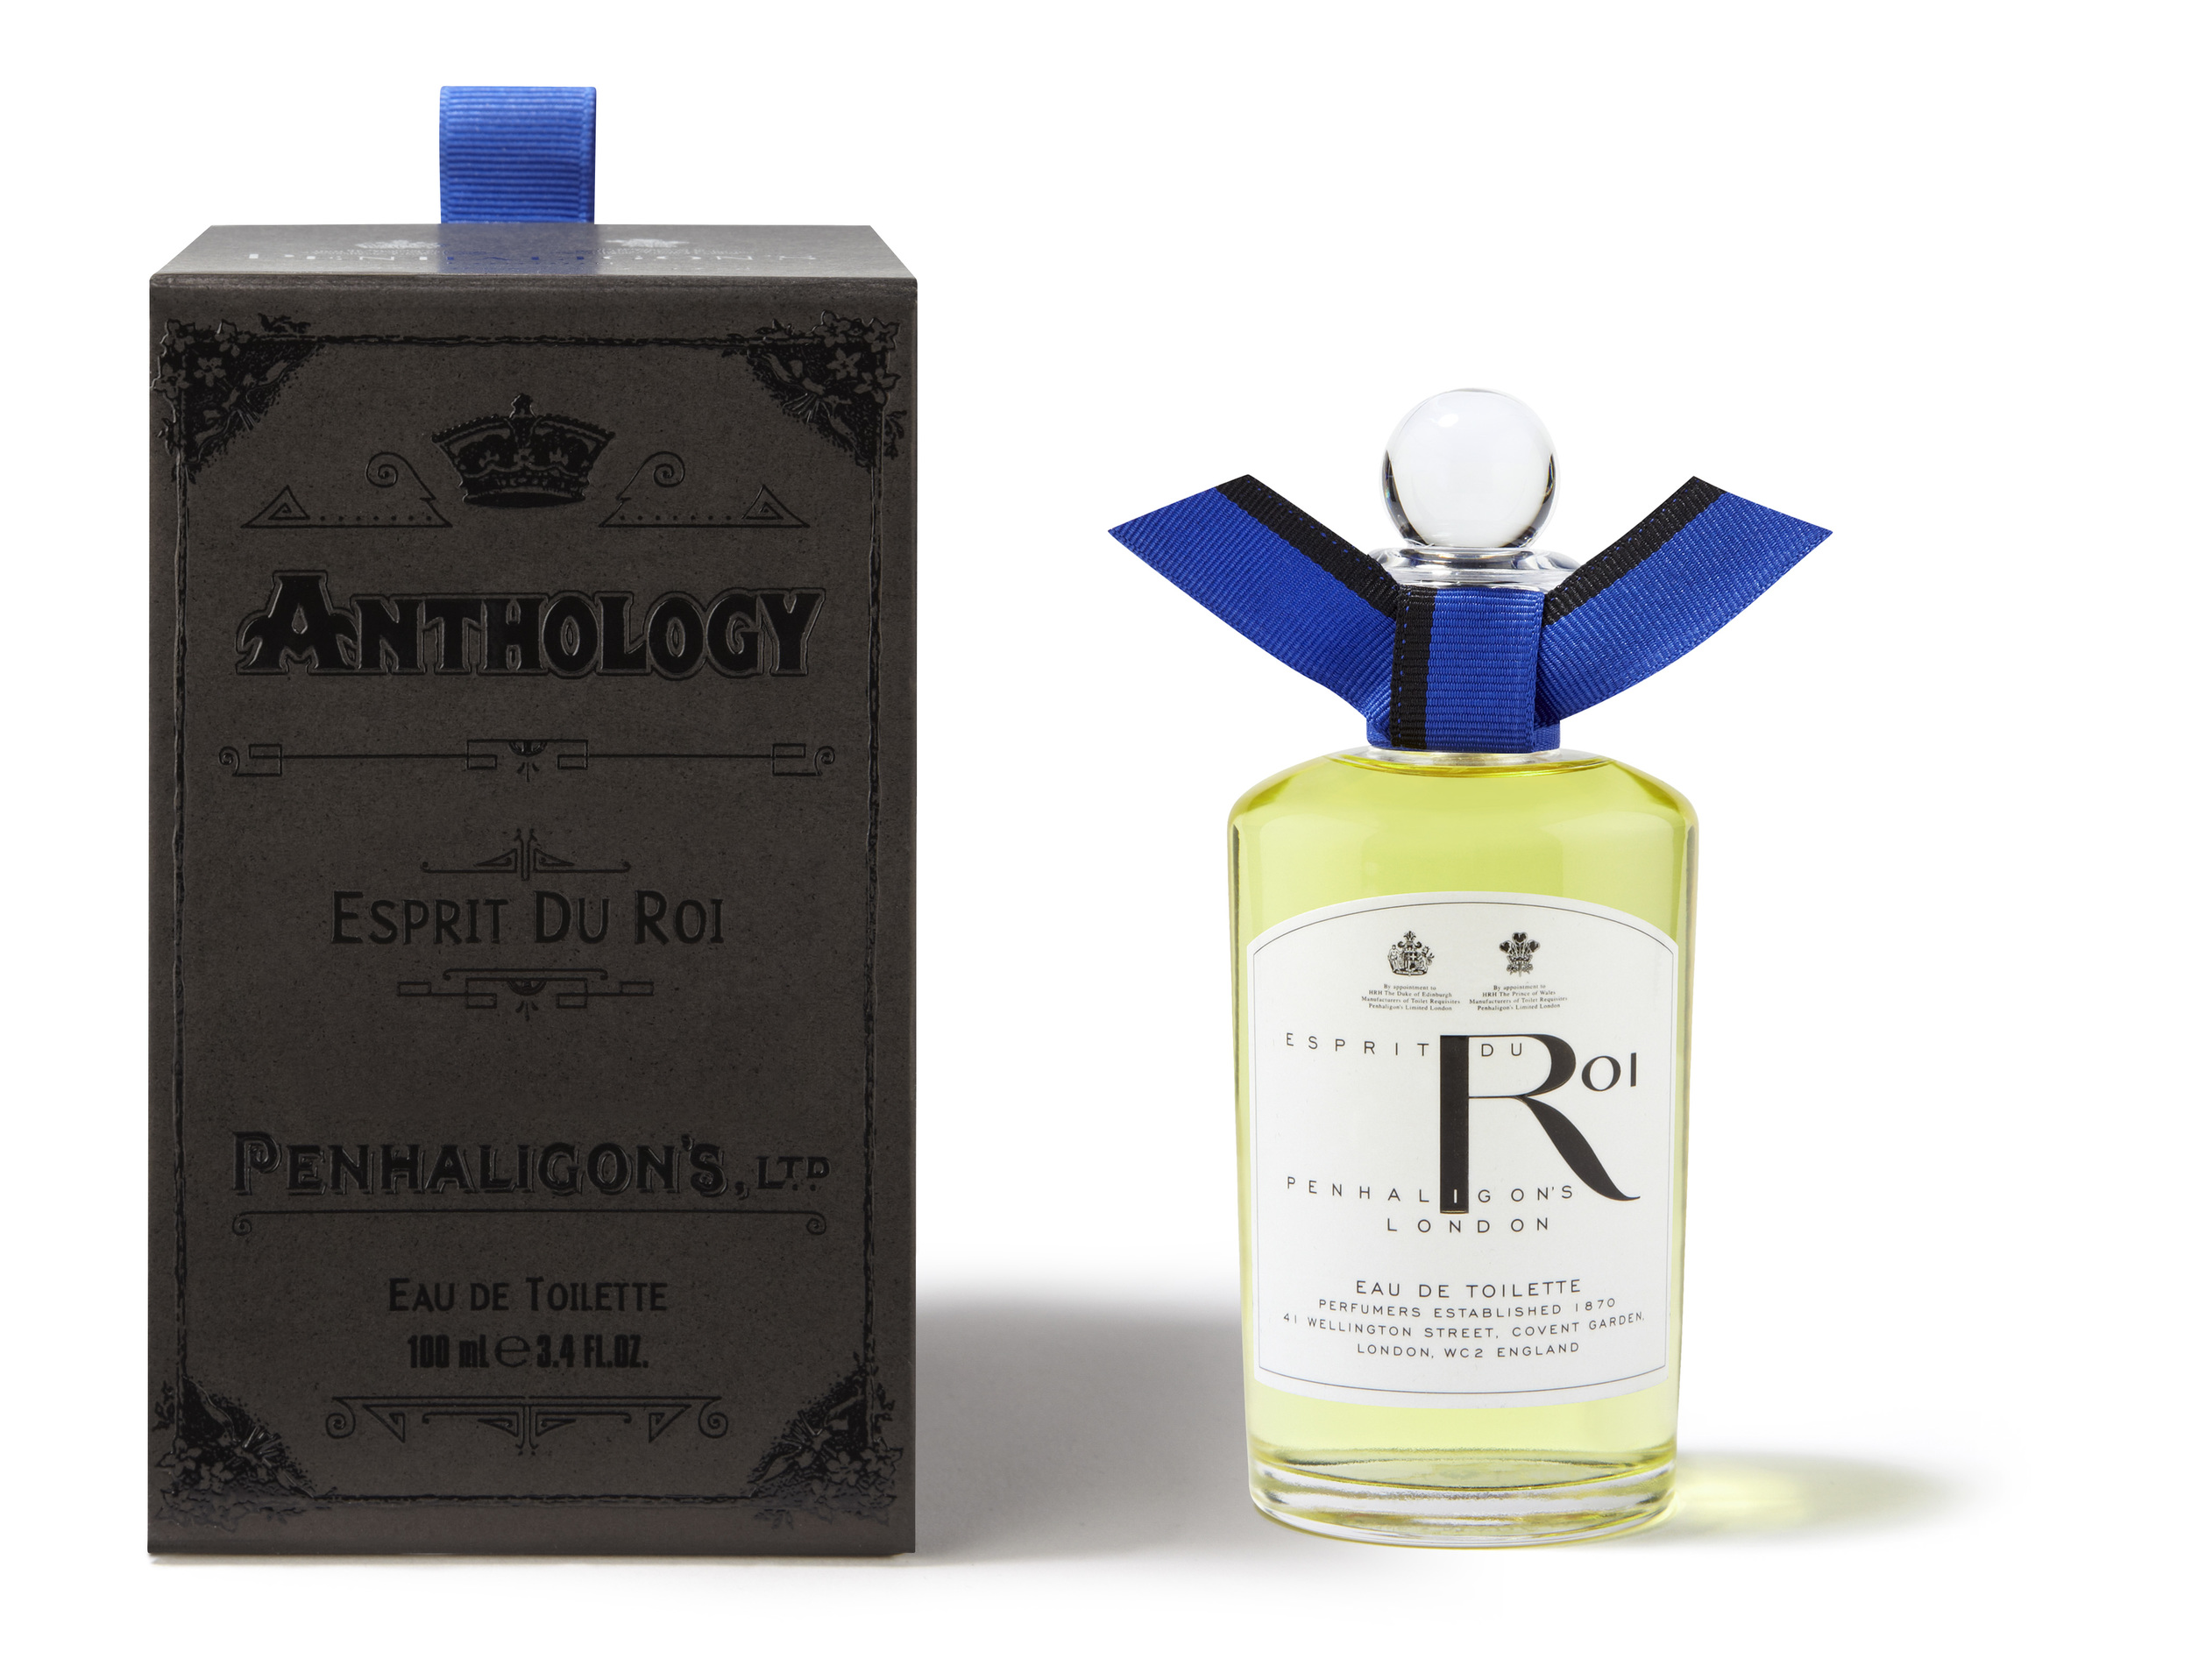 Originally created in 1983, Esprit du Roi returns as a lush woody citrus, heady with swirling scented foliage. Fresh tomato leaf, mint and raspberry leaf are combined with rich florals, warm woods and potent musks to create this masterpiece of contrasts.  Esprit du Roi 100ml Price: HK$1,620  Orange Blossom